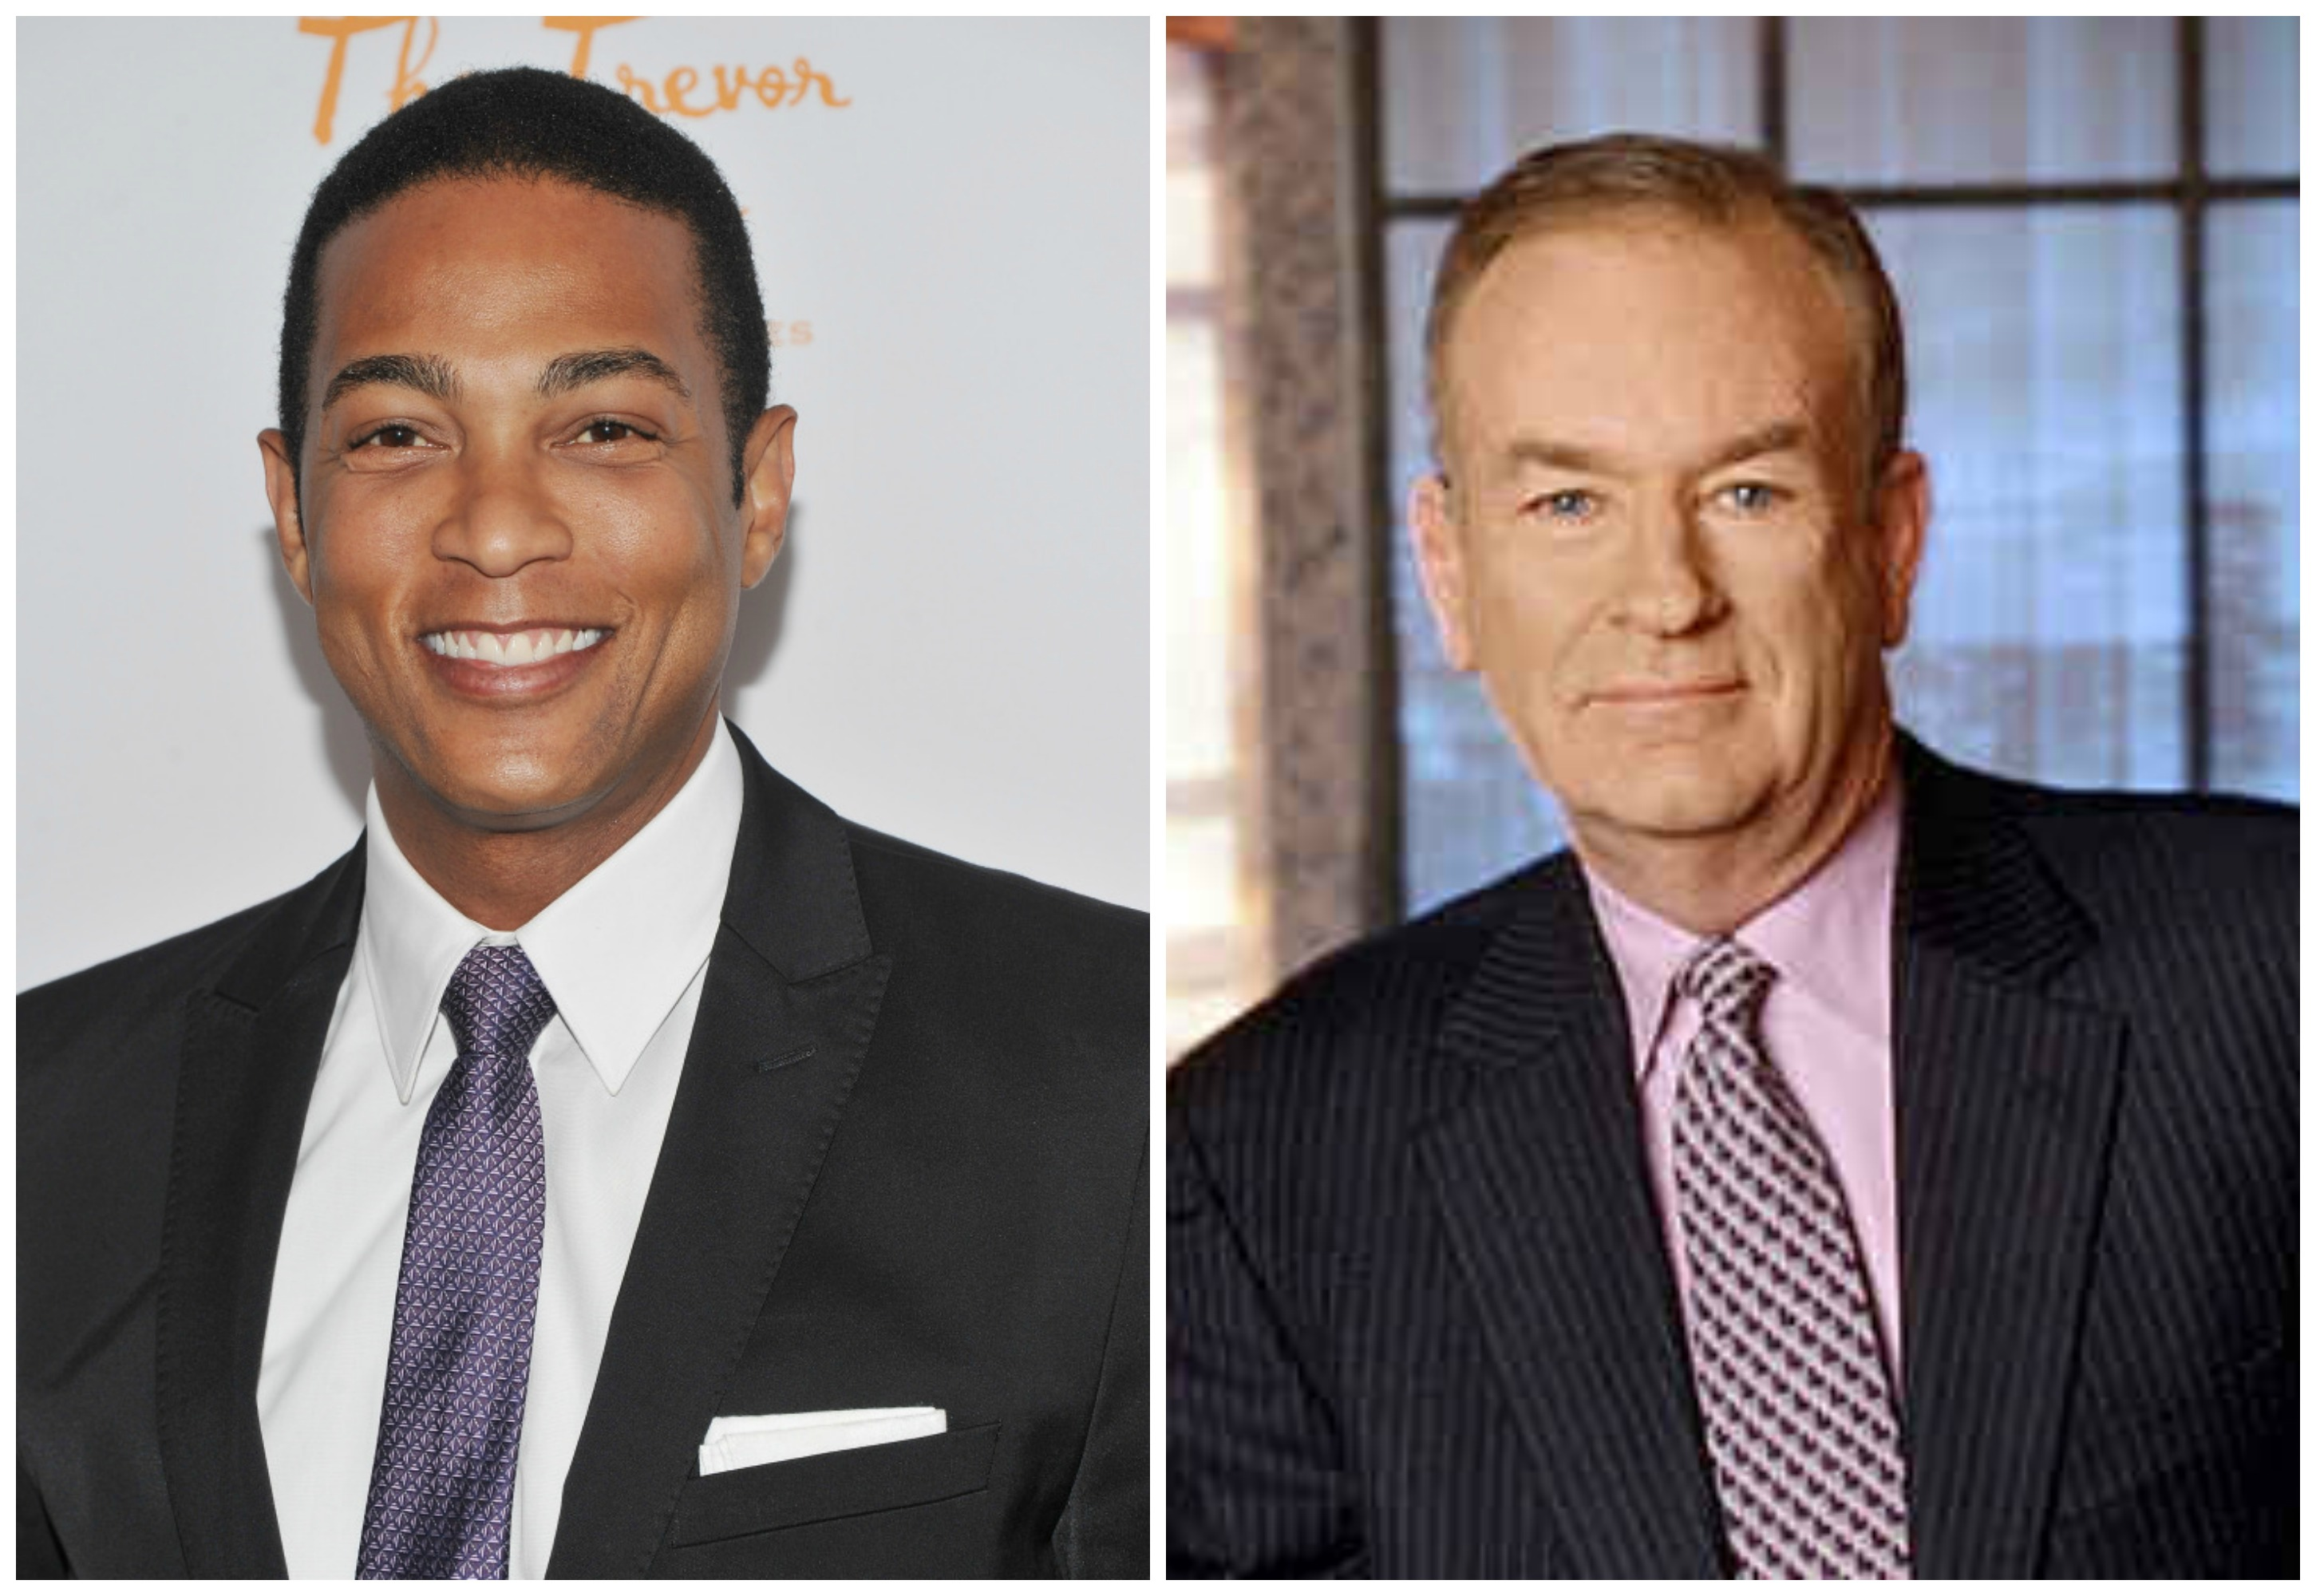 Don Lemon, Bill O'Reilly & the Politics of Deflection and Distortion